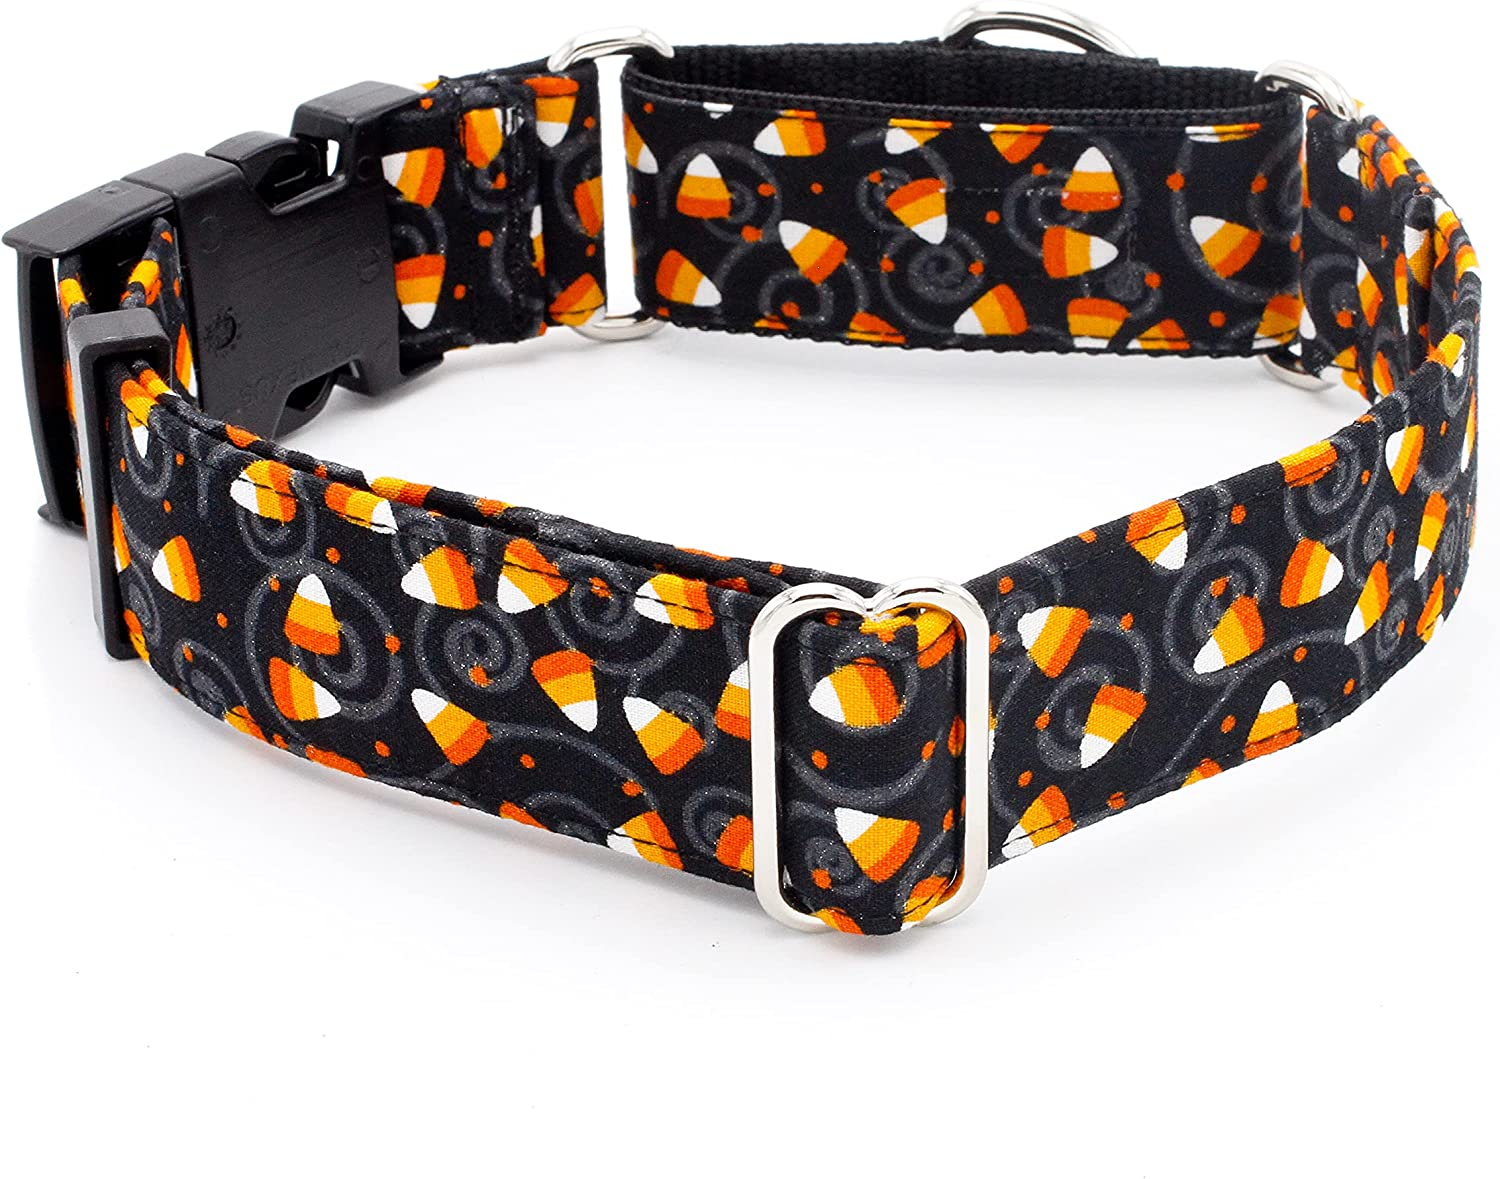 Candy Corn Dog Collar 3 Super special price 4